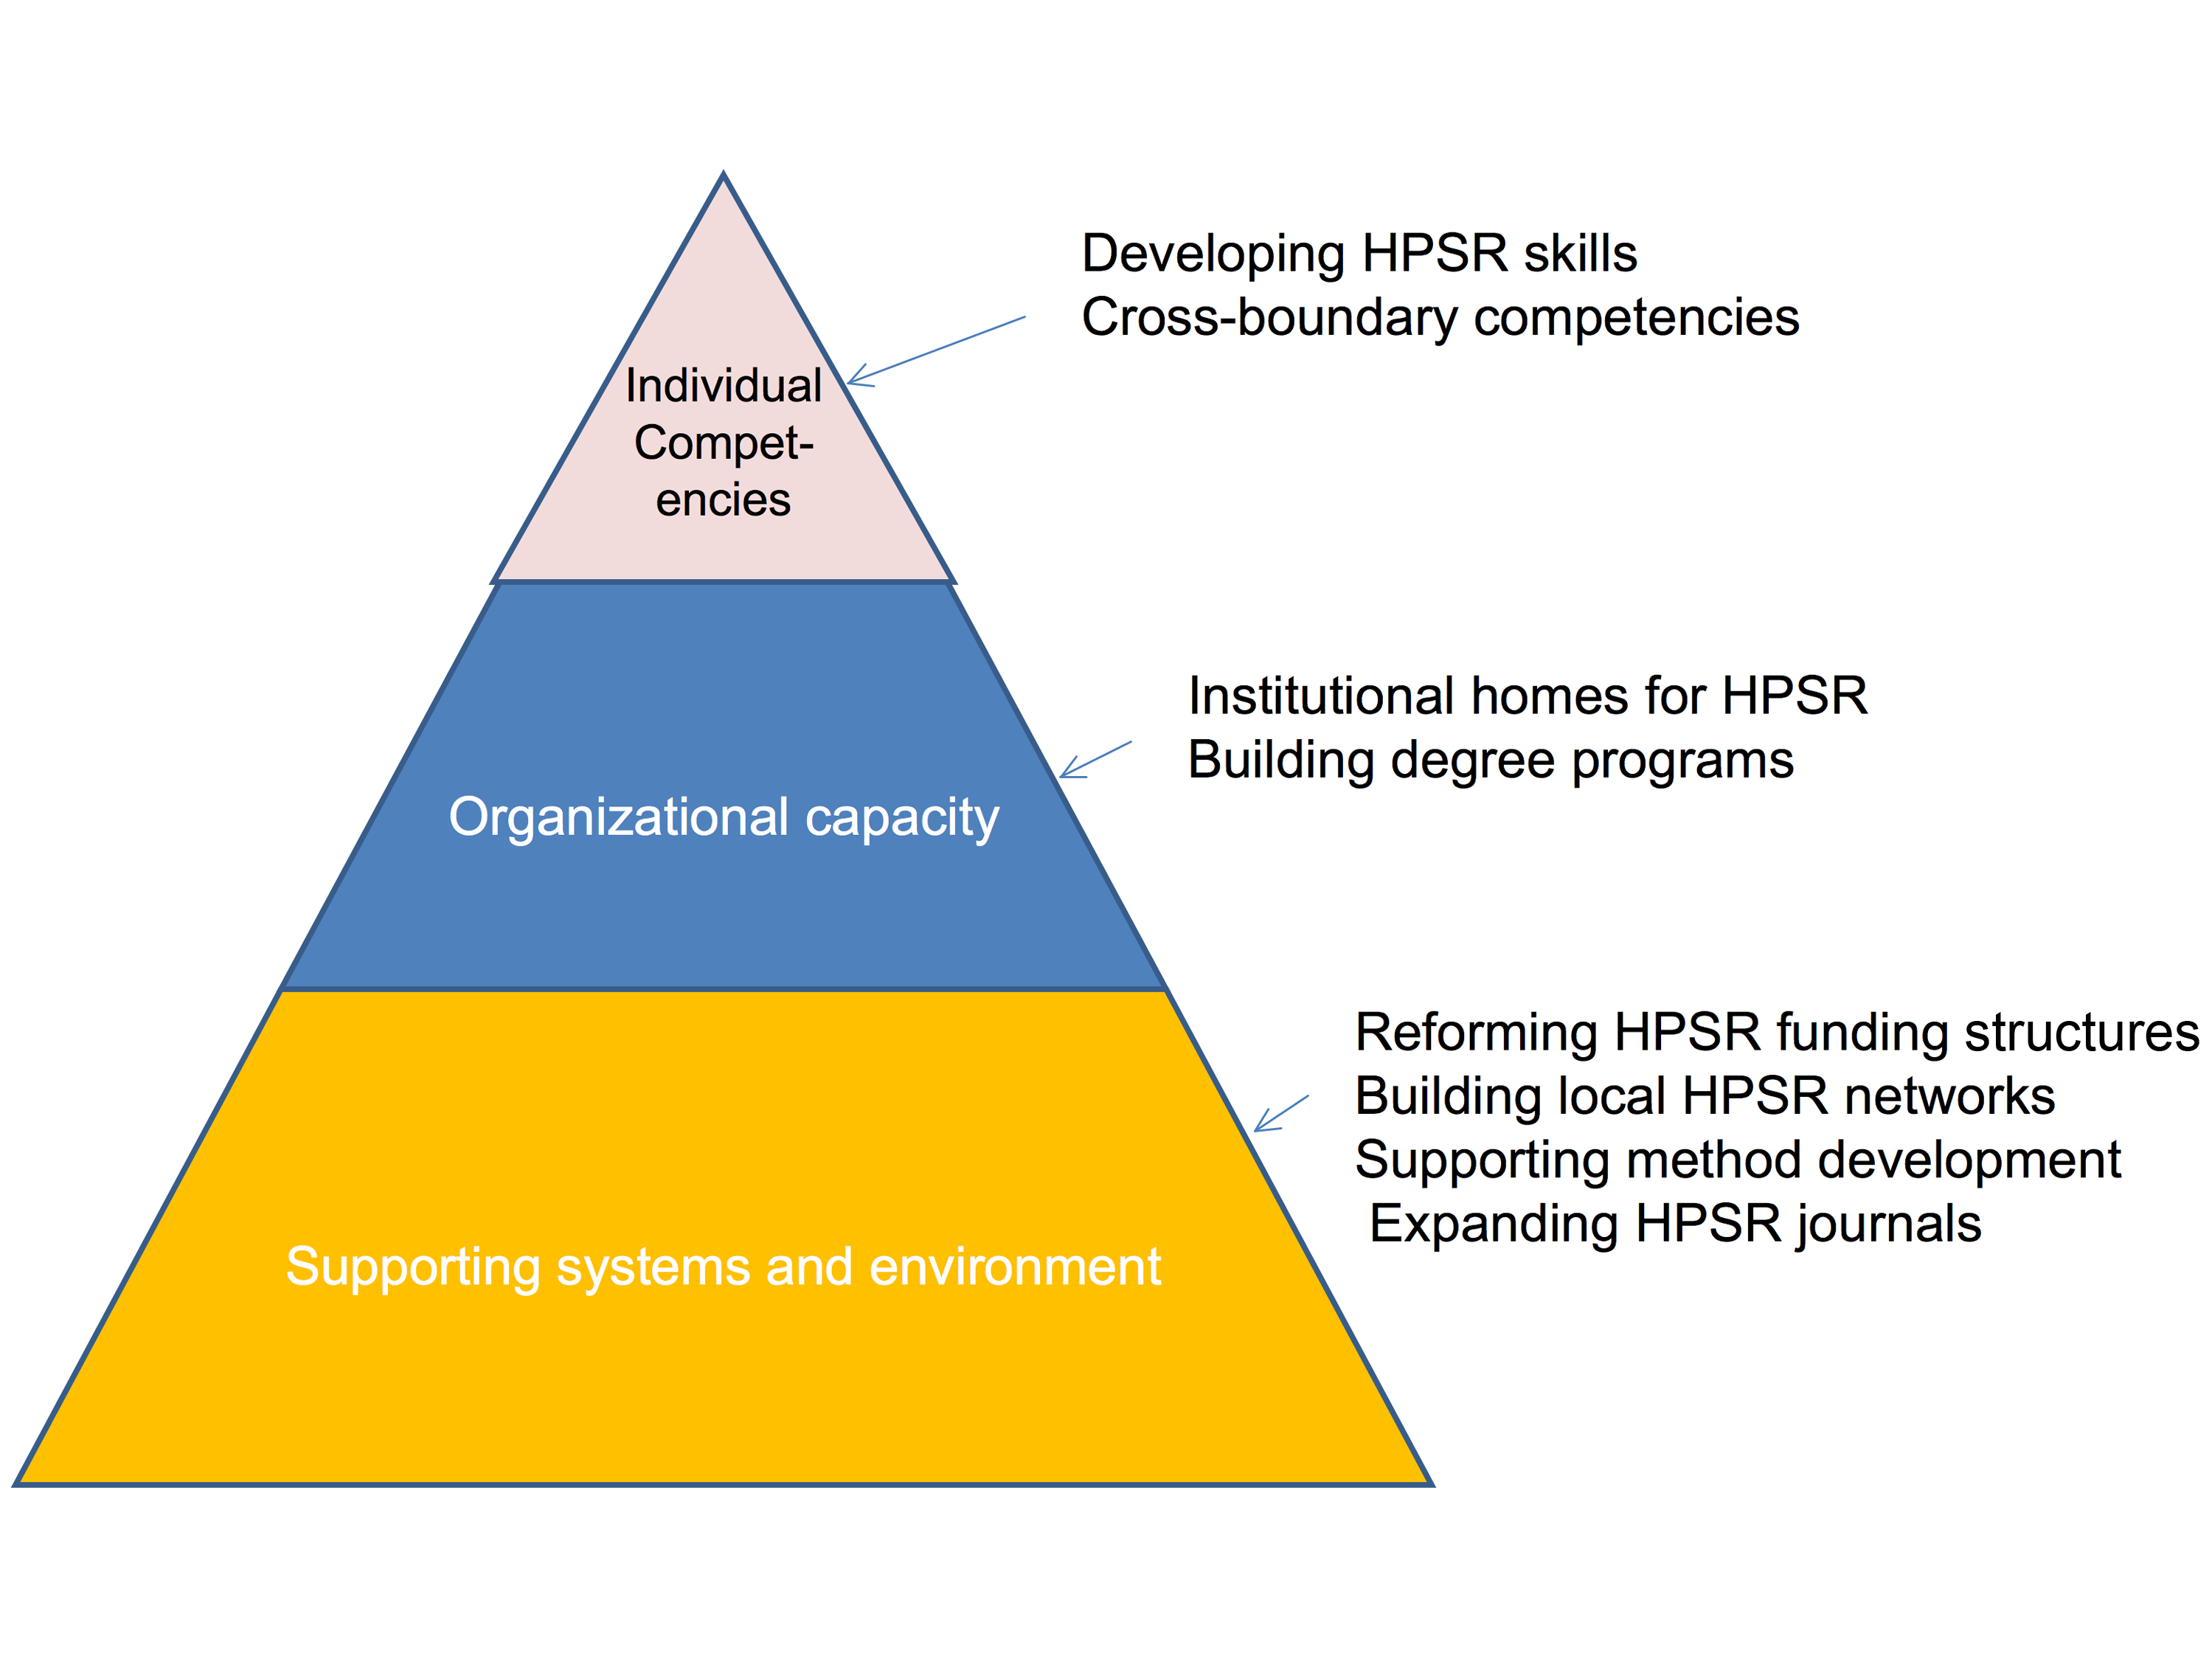 Dimensions of capacity in the HPSR field.